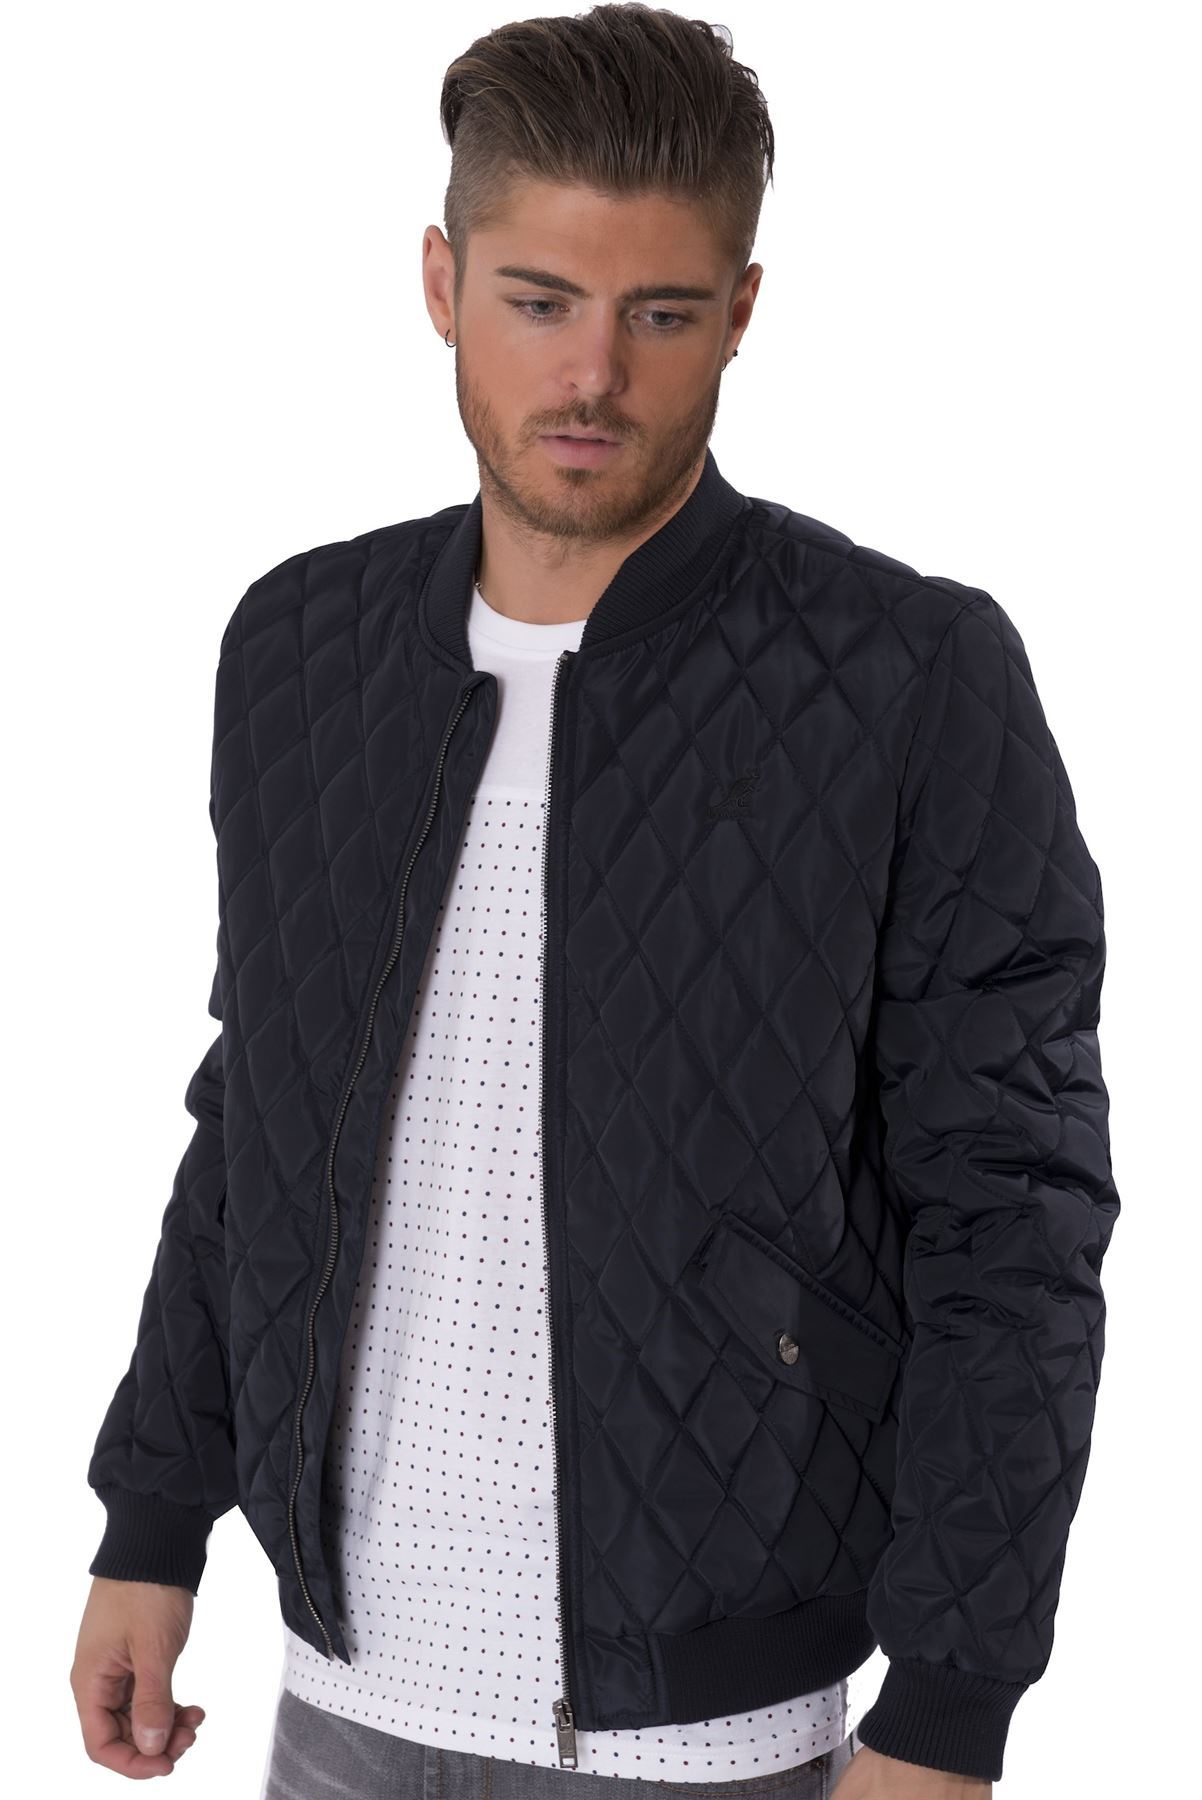 Kangol Mens Quilted Ma1 Bomber Jacket Zip Up Lightweight